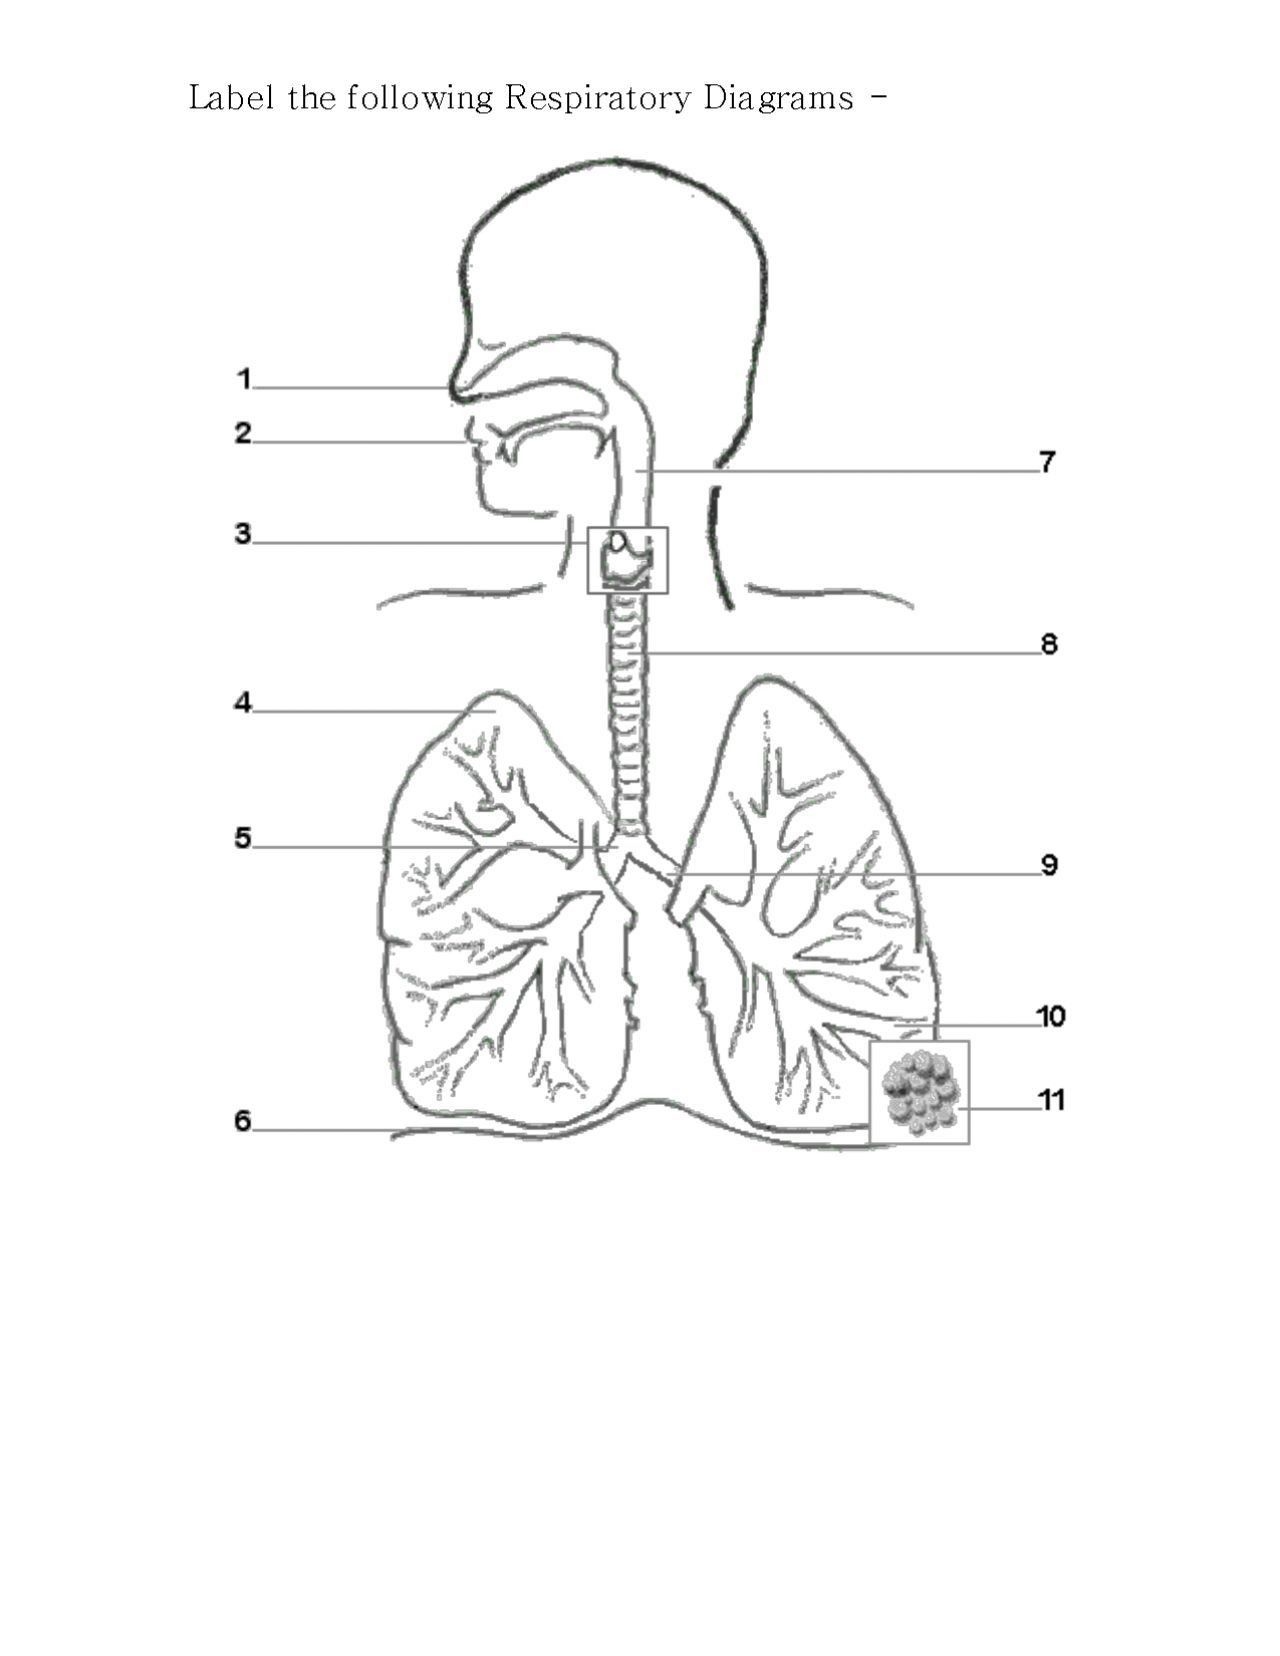 Label Diagram Of Respiratory System Luxury Respiratory